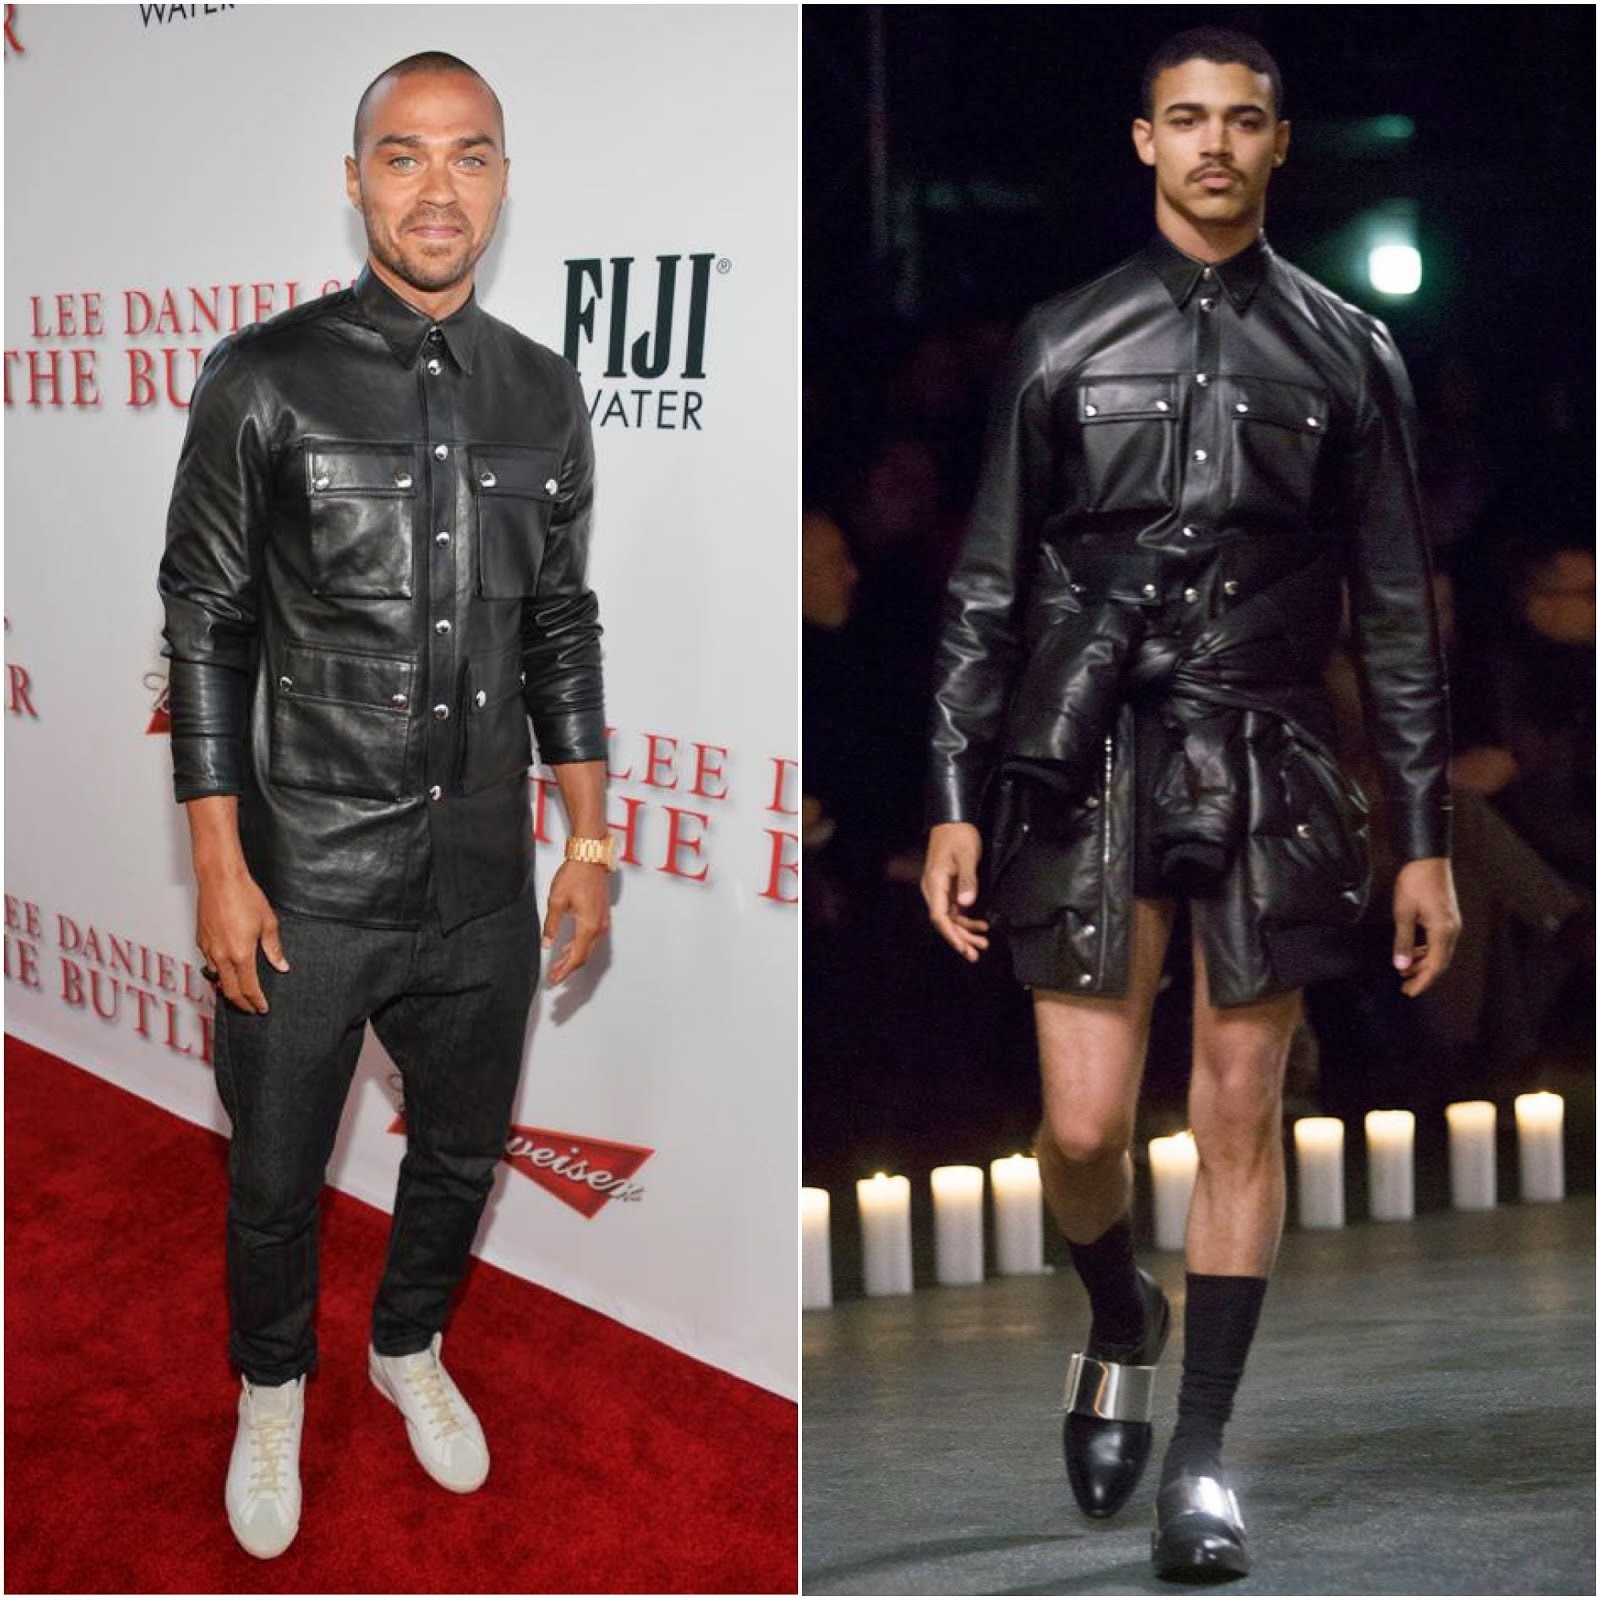 00O00 Menswear Blog http://00O00.blogspot.com Jesse Williams in Givenchy Fall Winter 2013 Menswear Shirt/Jacket- 'The Butler' Los Angeles Premiere